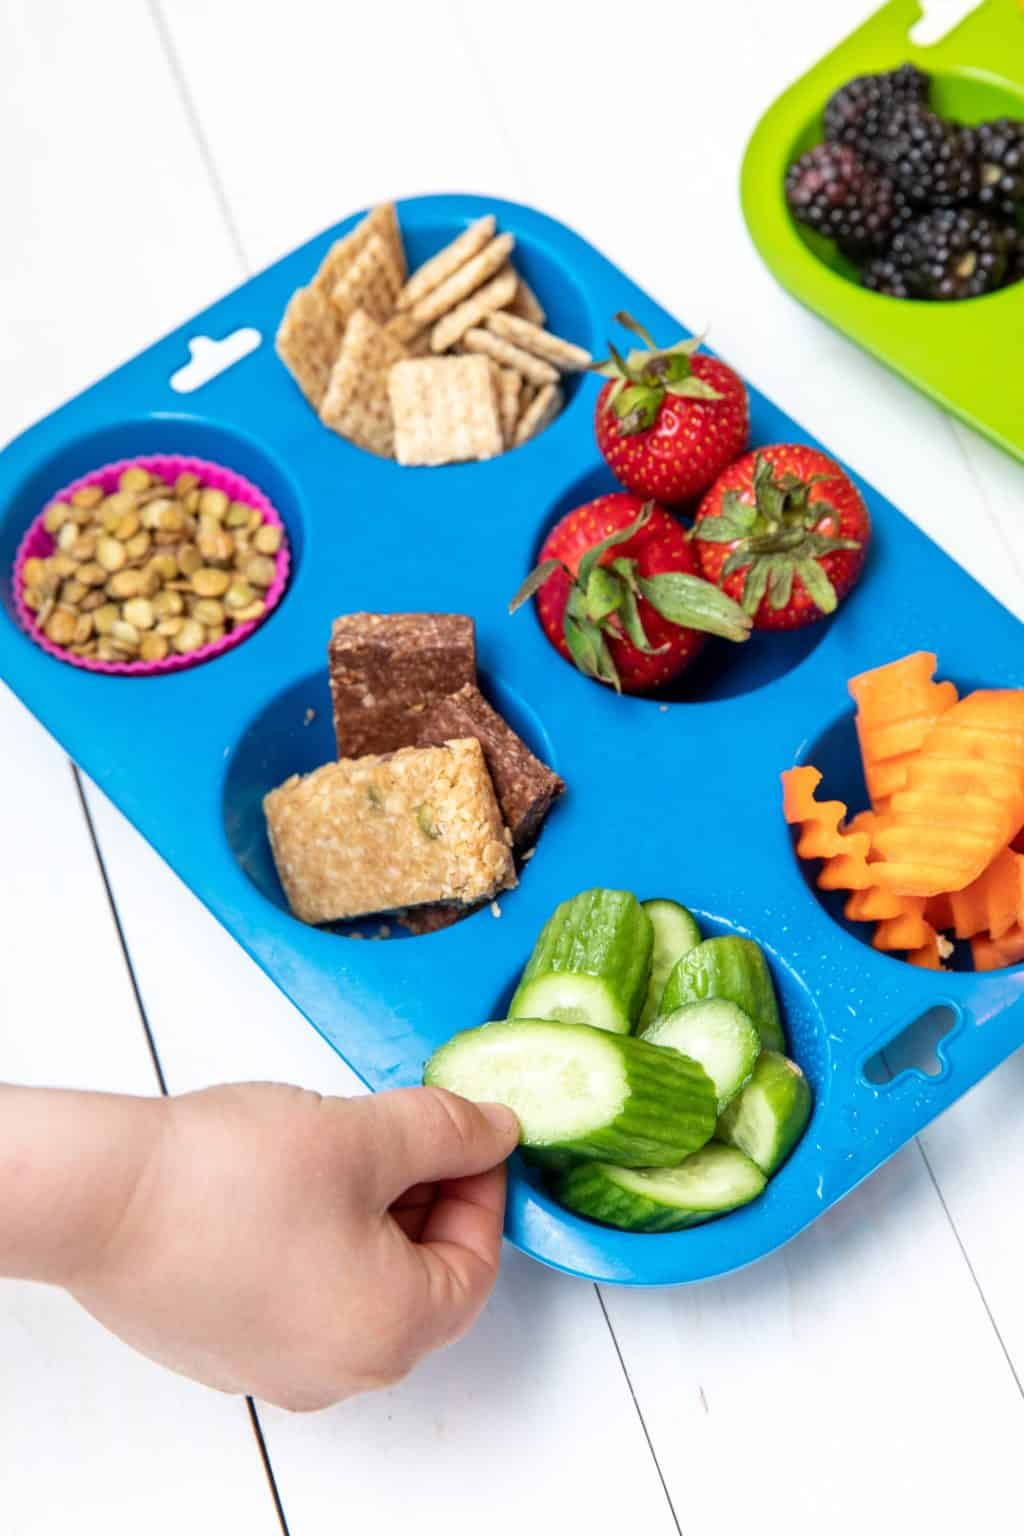 snack board with assortment of fruit, cheese, nuts and seeds